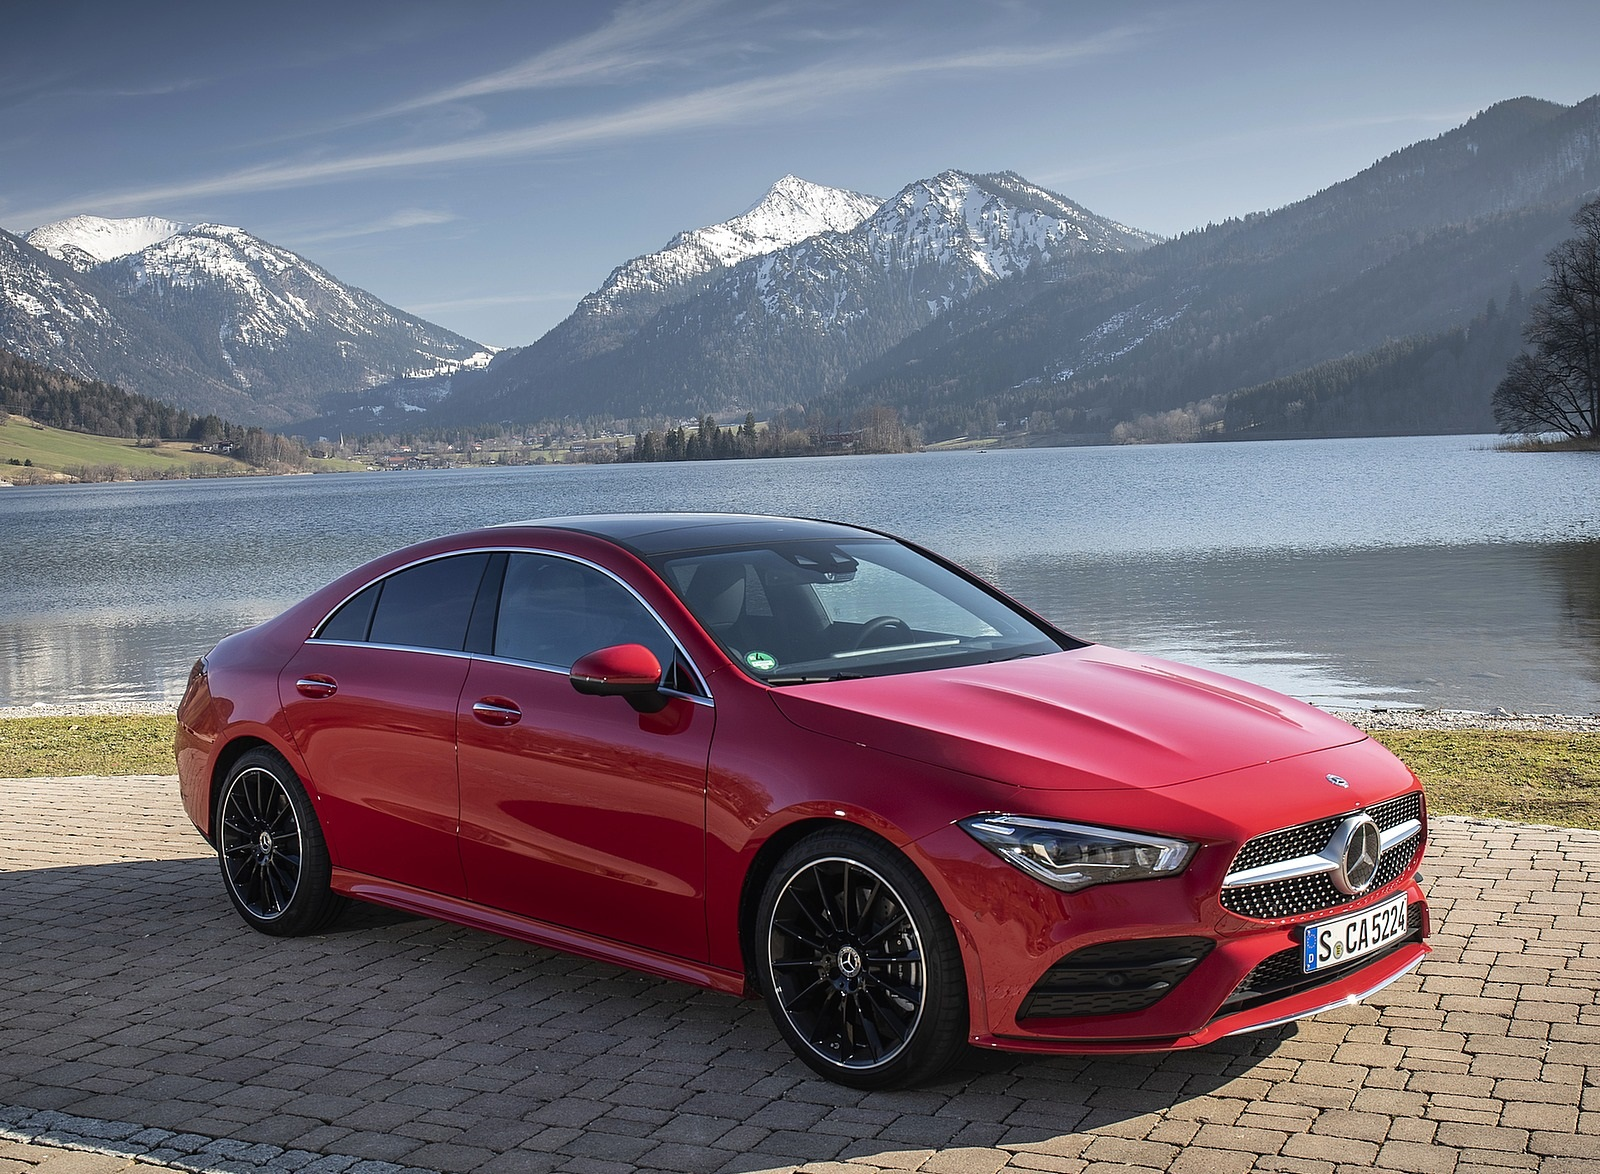 2020 Mercedes-Benz CLA 250 4MATIC Coupe AMG Line (Color: Jupiter Red) Front Three-Quarter Wallpapers (9)